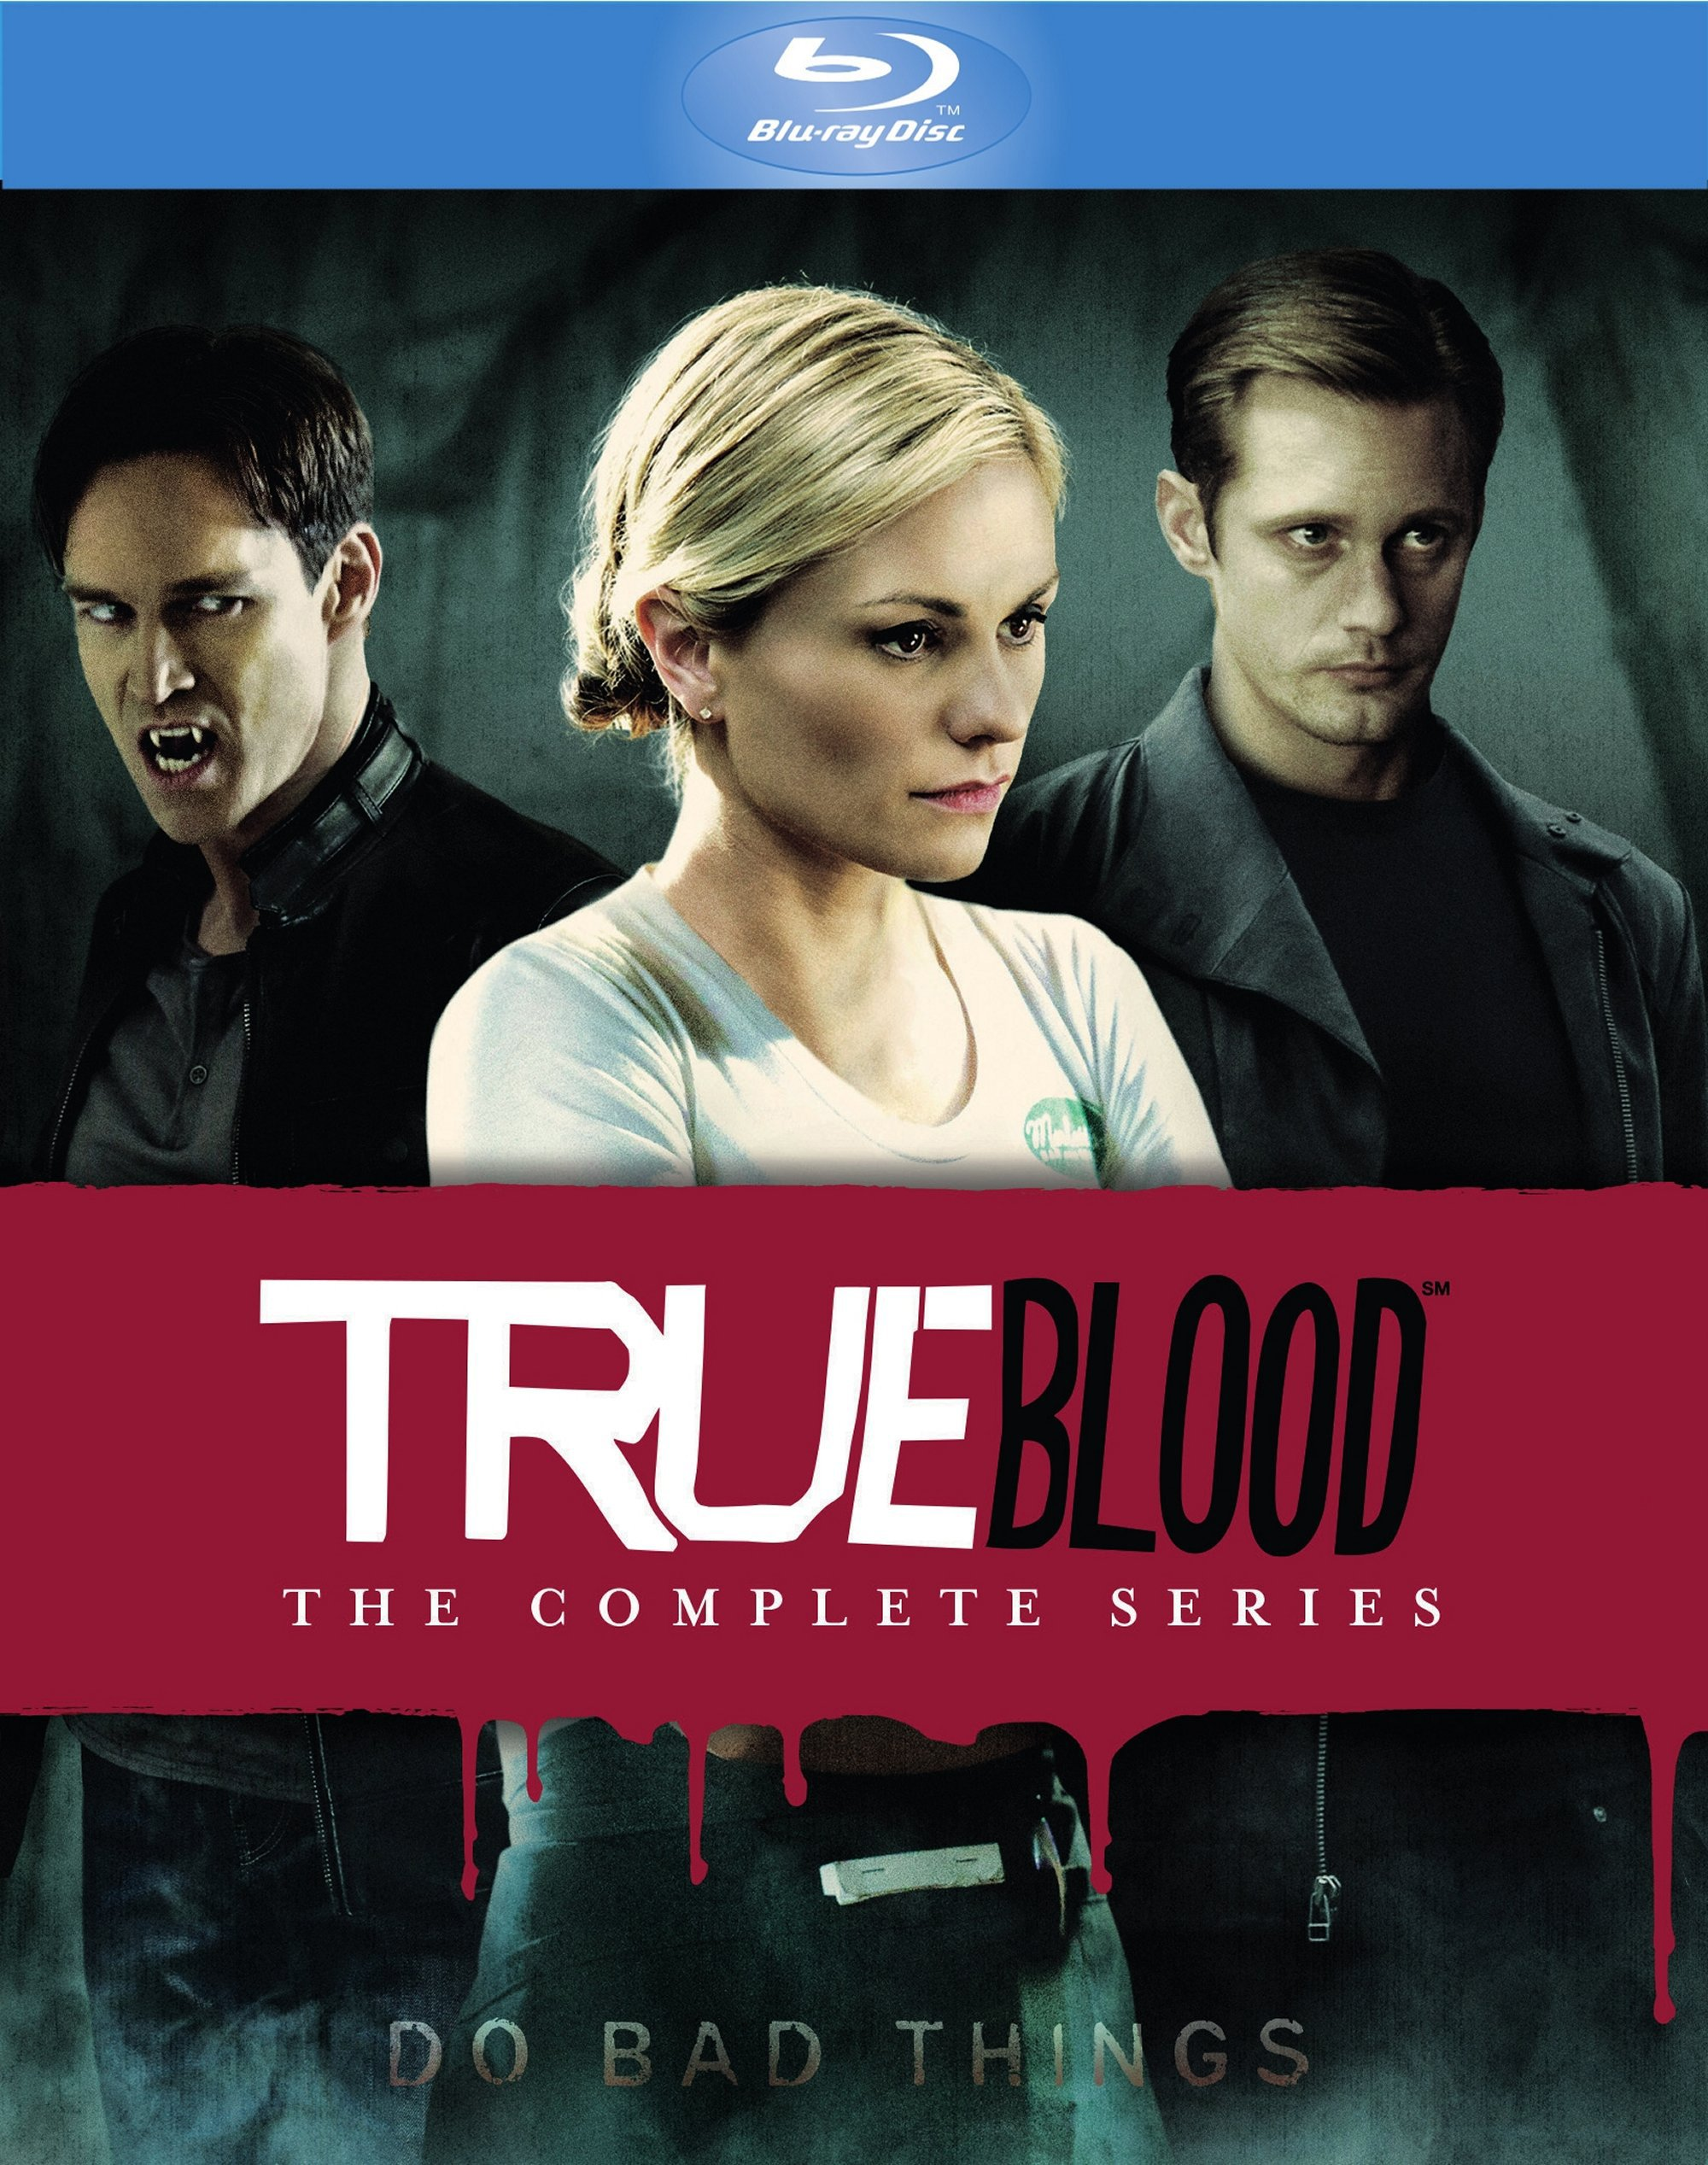 True Blood - Season 1-7 [Blu-ray] [Region Free] by HBO Warner Home Video